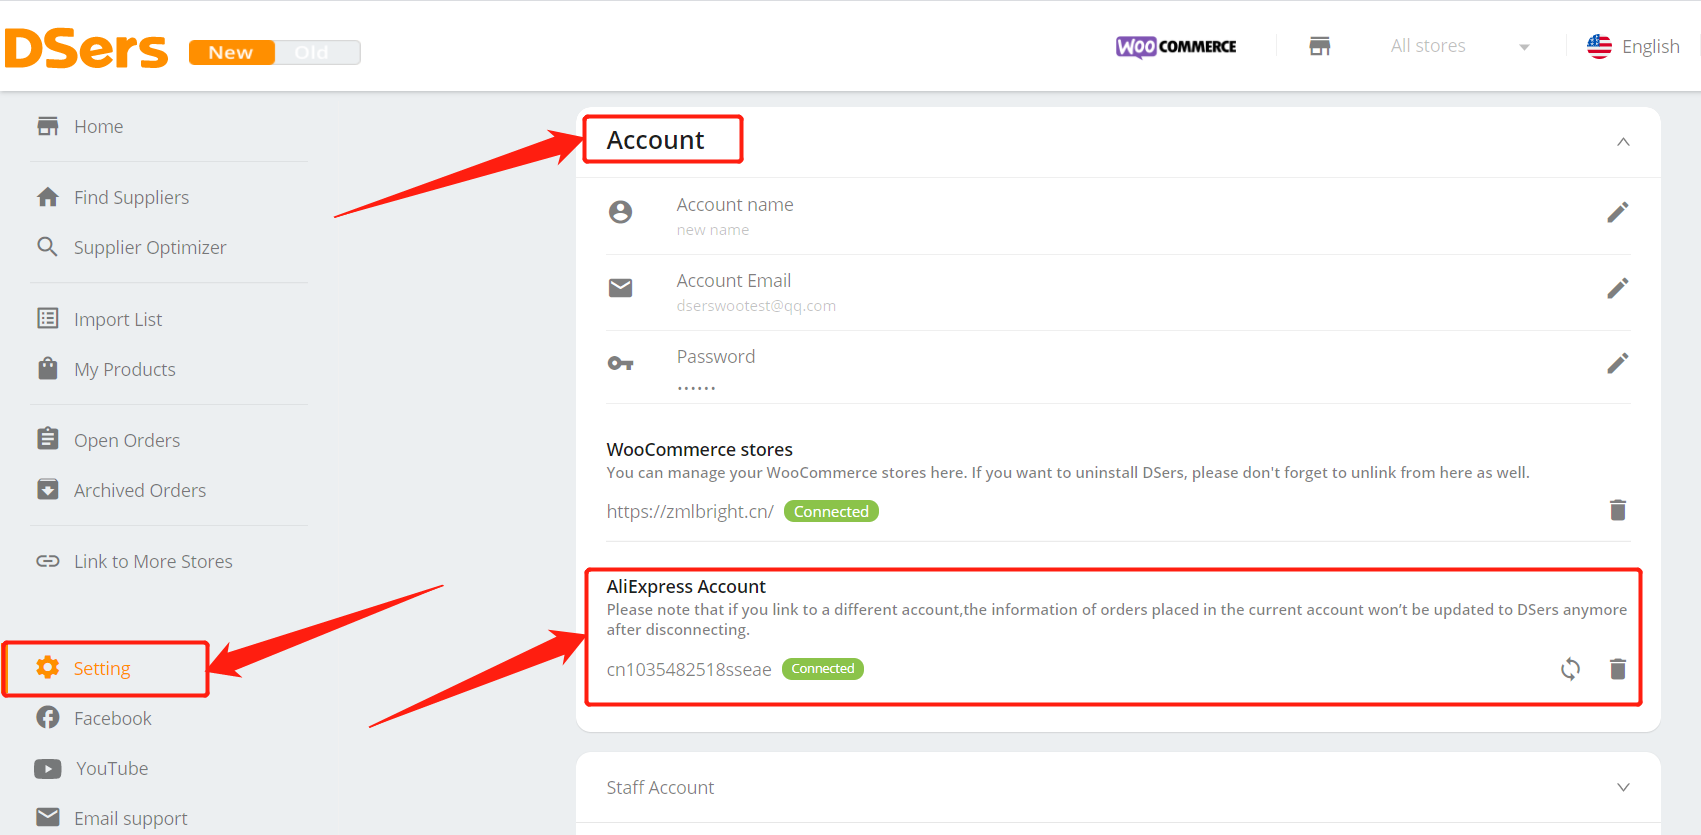 Disconnect AliExpress account with Woo DSers - Access AliExpress account setting - Woo DSers